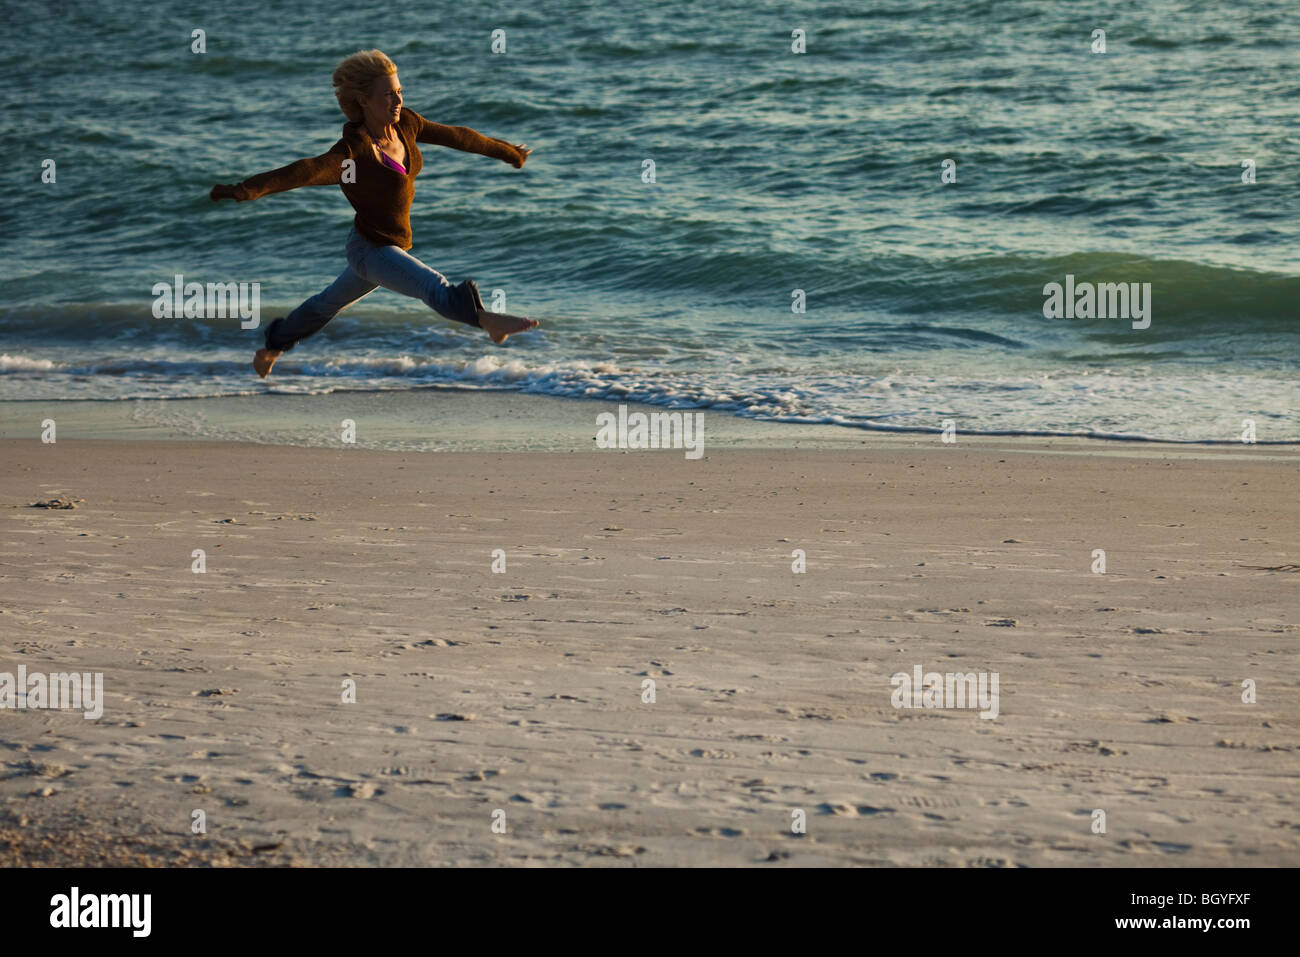 Woman leaping in midair at beach - Stock Image